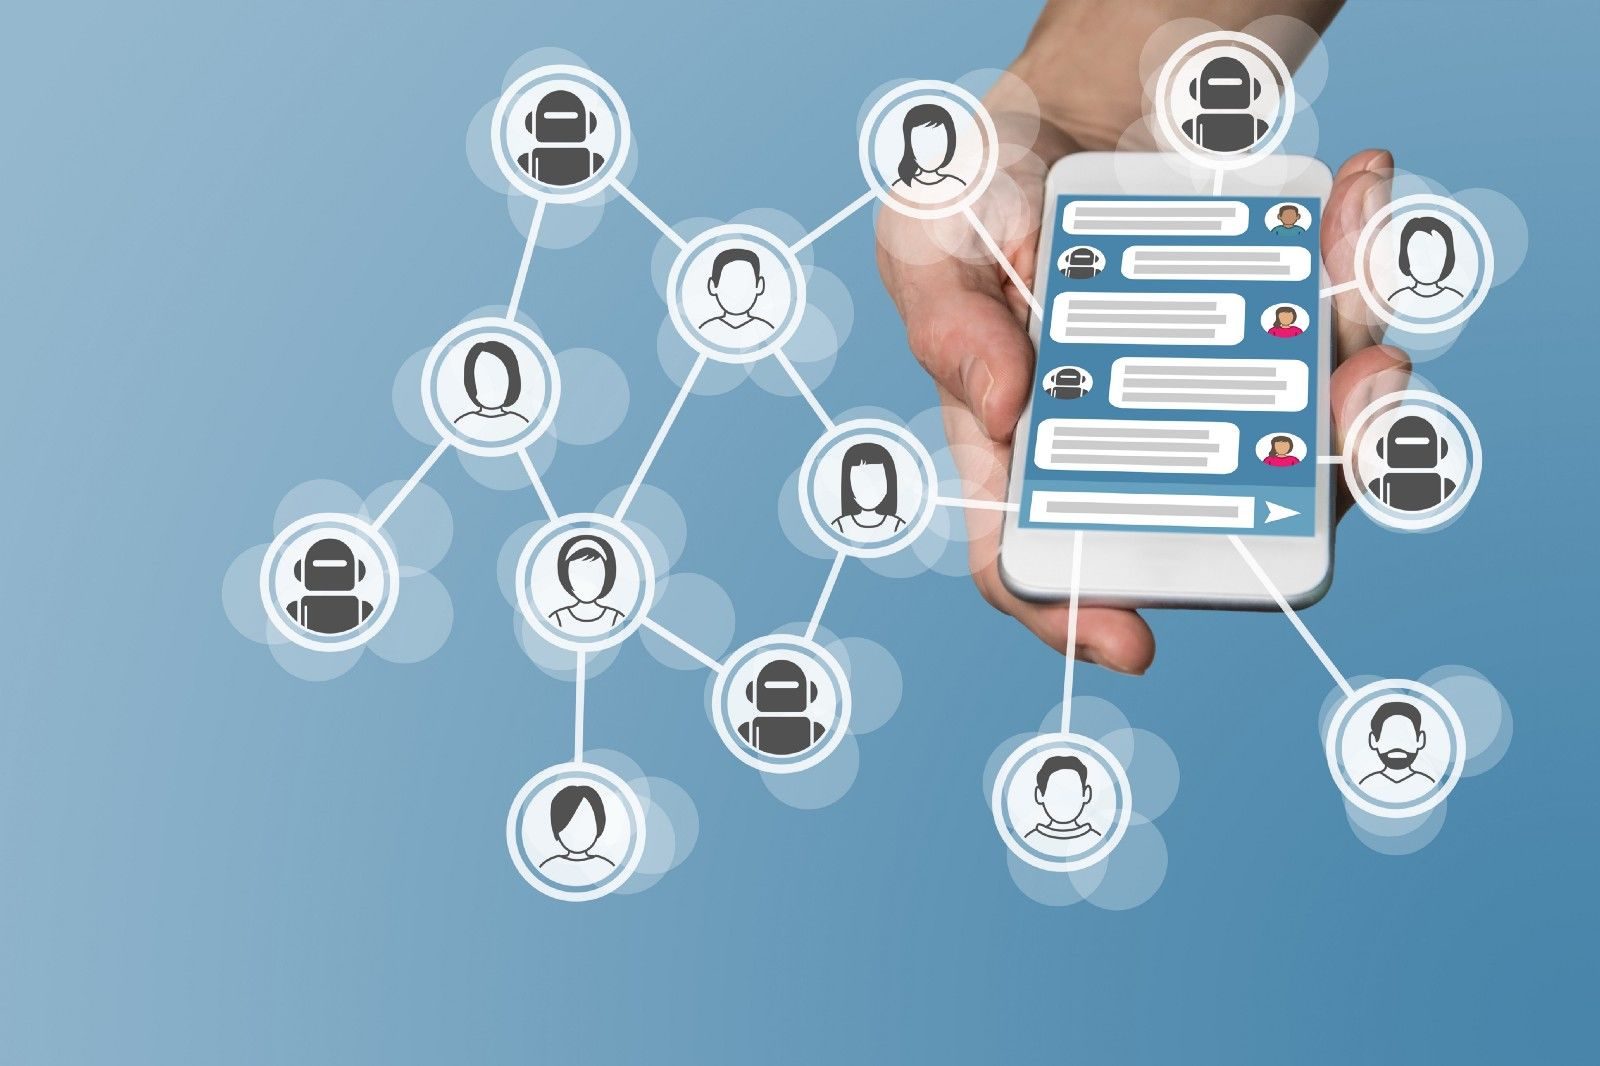 6 Chatbot Marketing Strategies You Need to Use in 2018